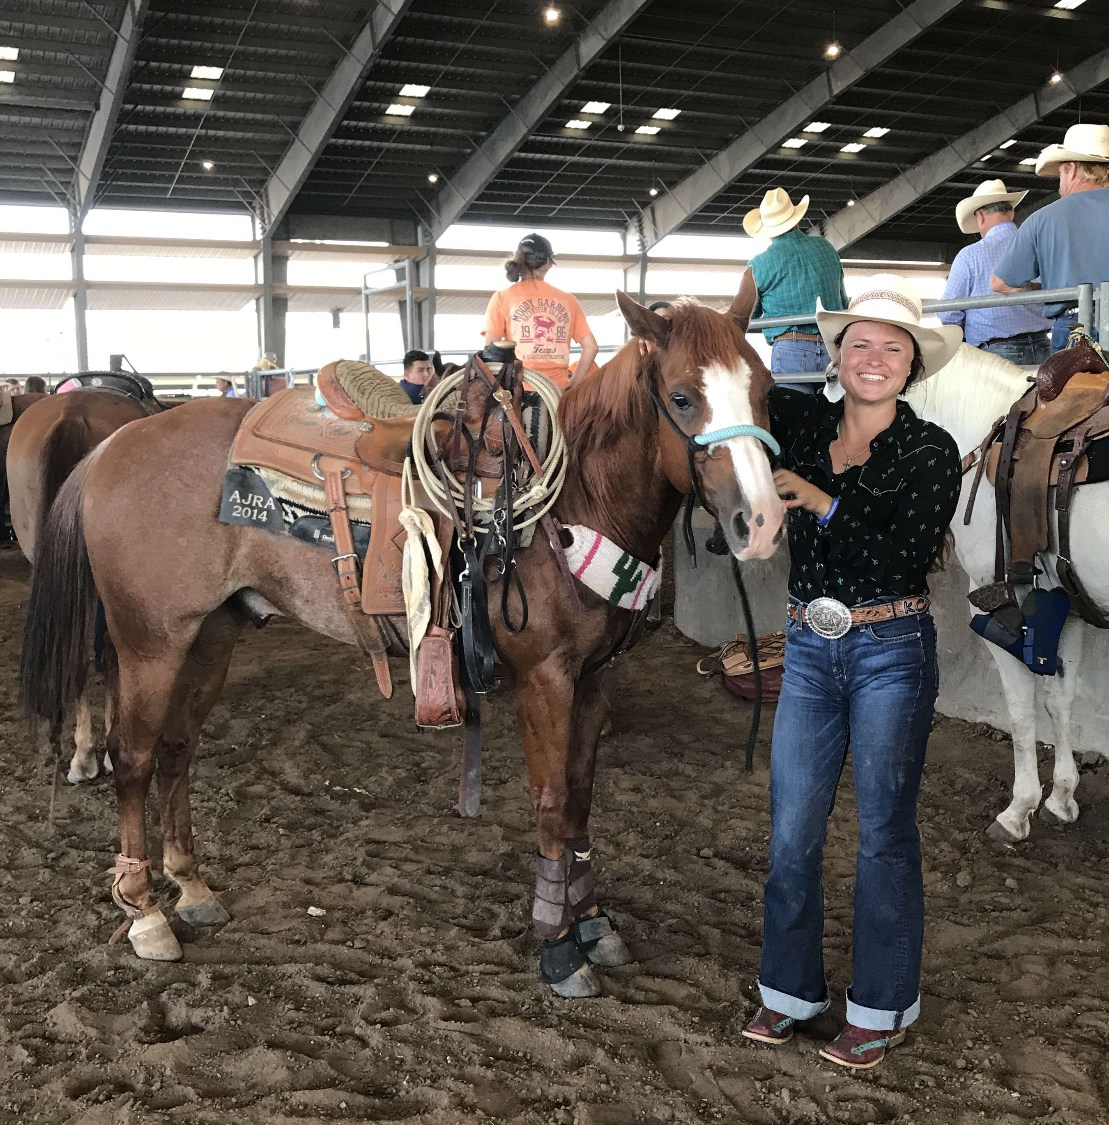 Kody Criswell and her horse at the State FFA Rodeo